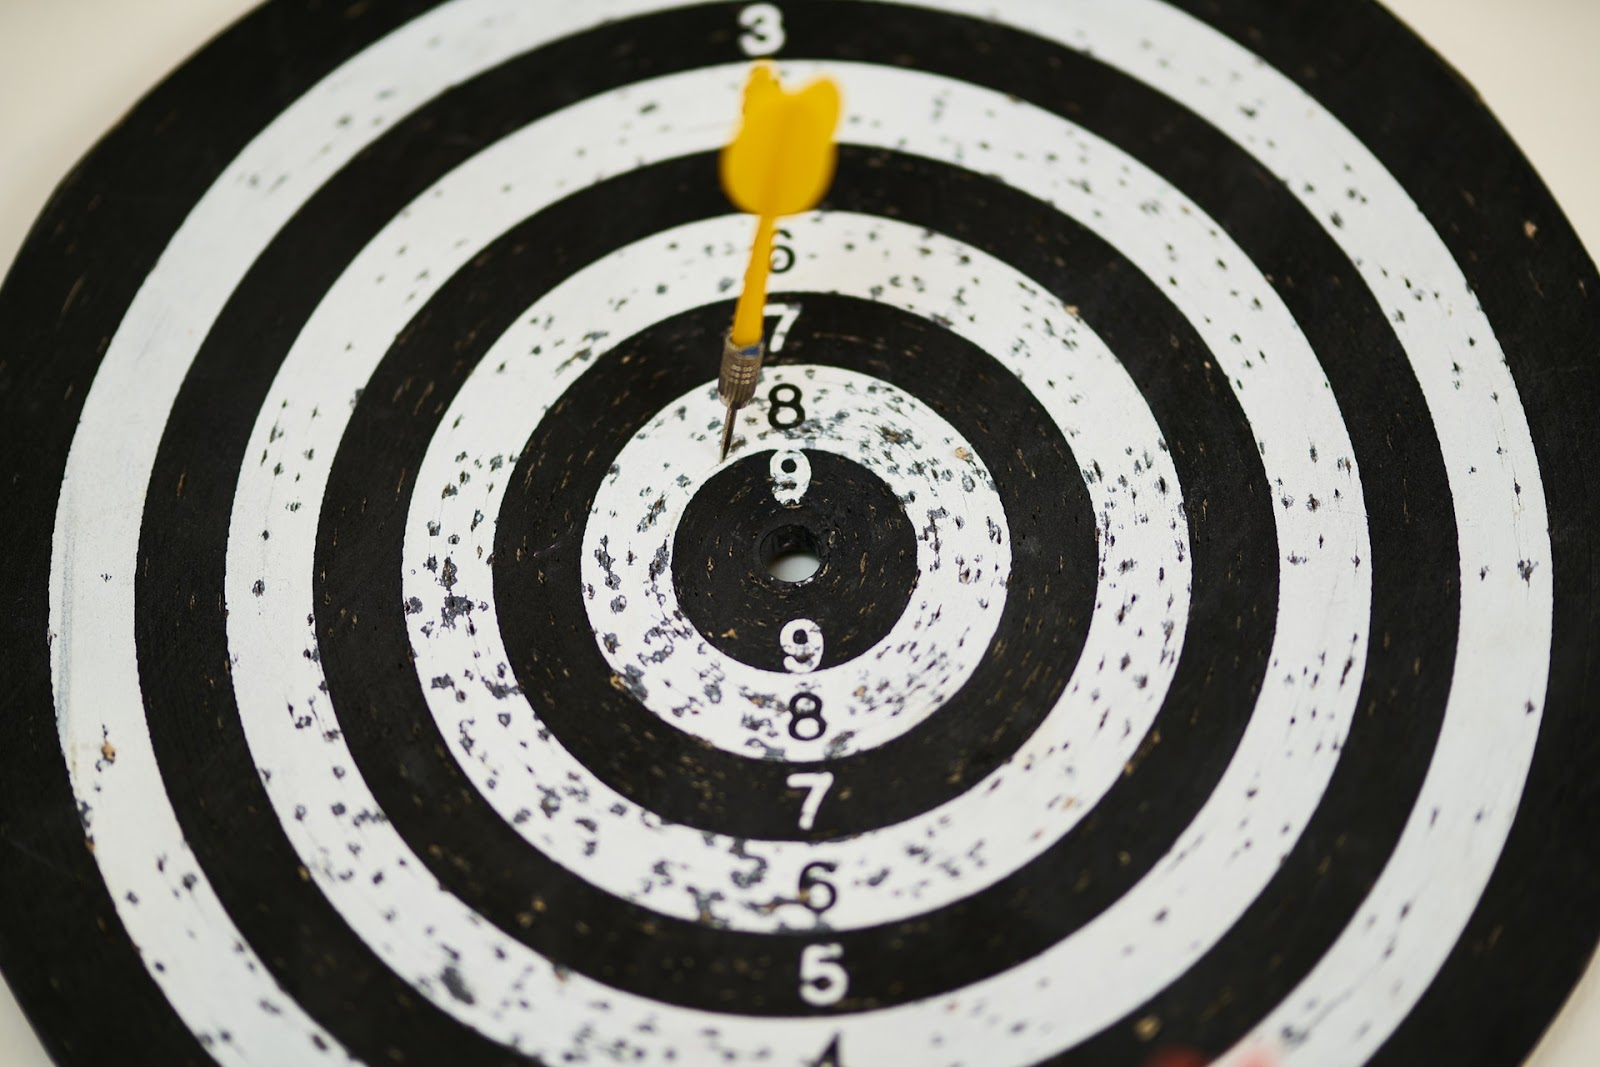 A target with a dart in it. Goals and targets play a big role in figuring out how to learn a language.